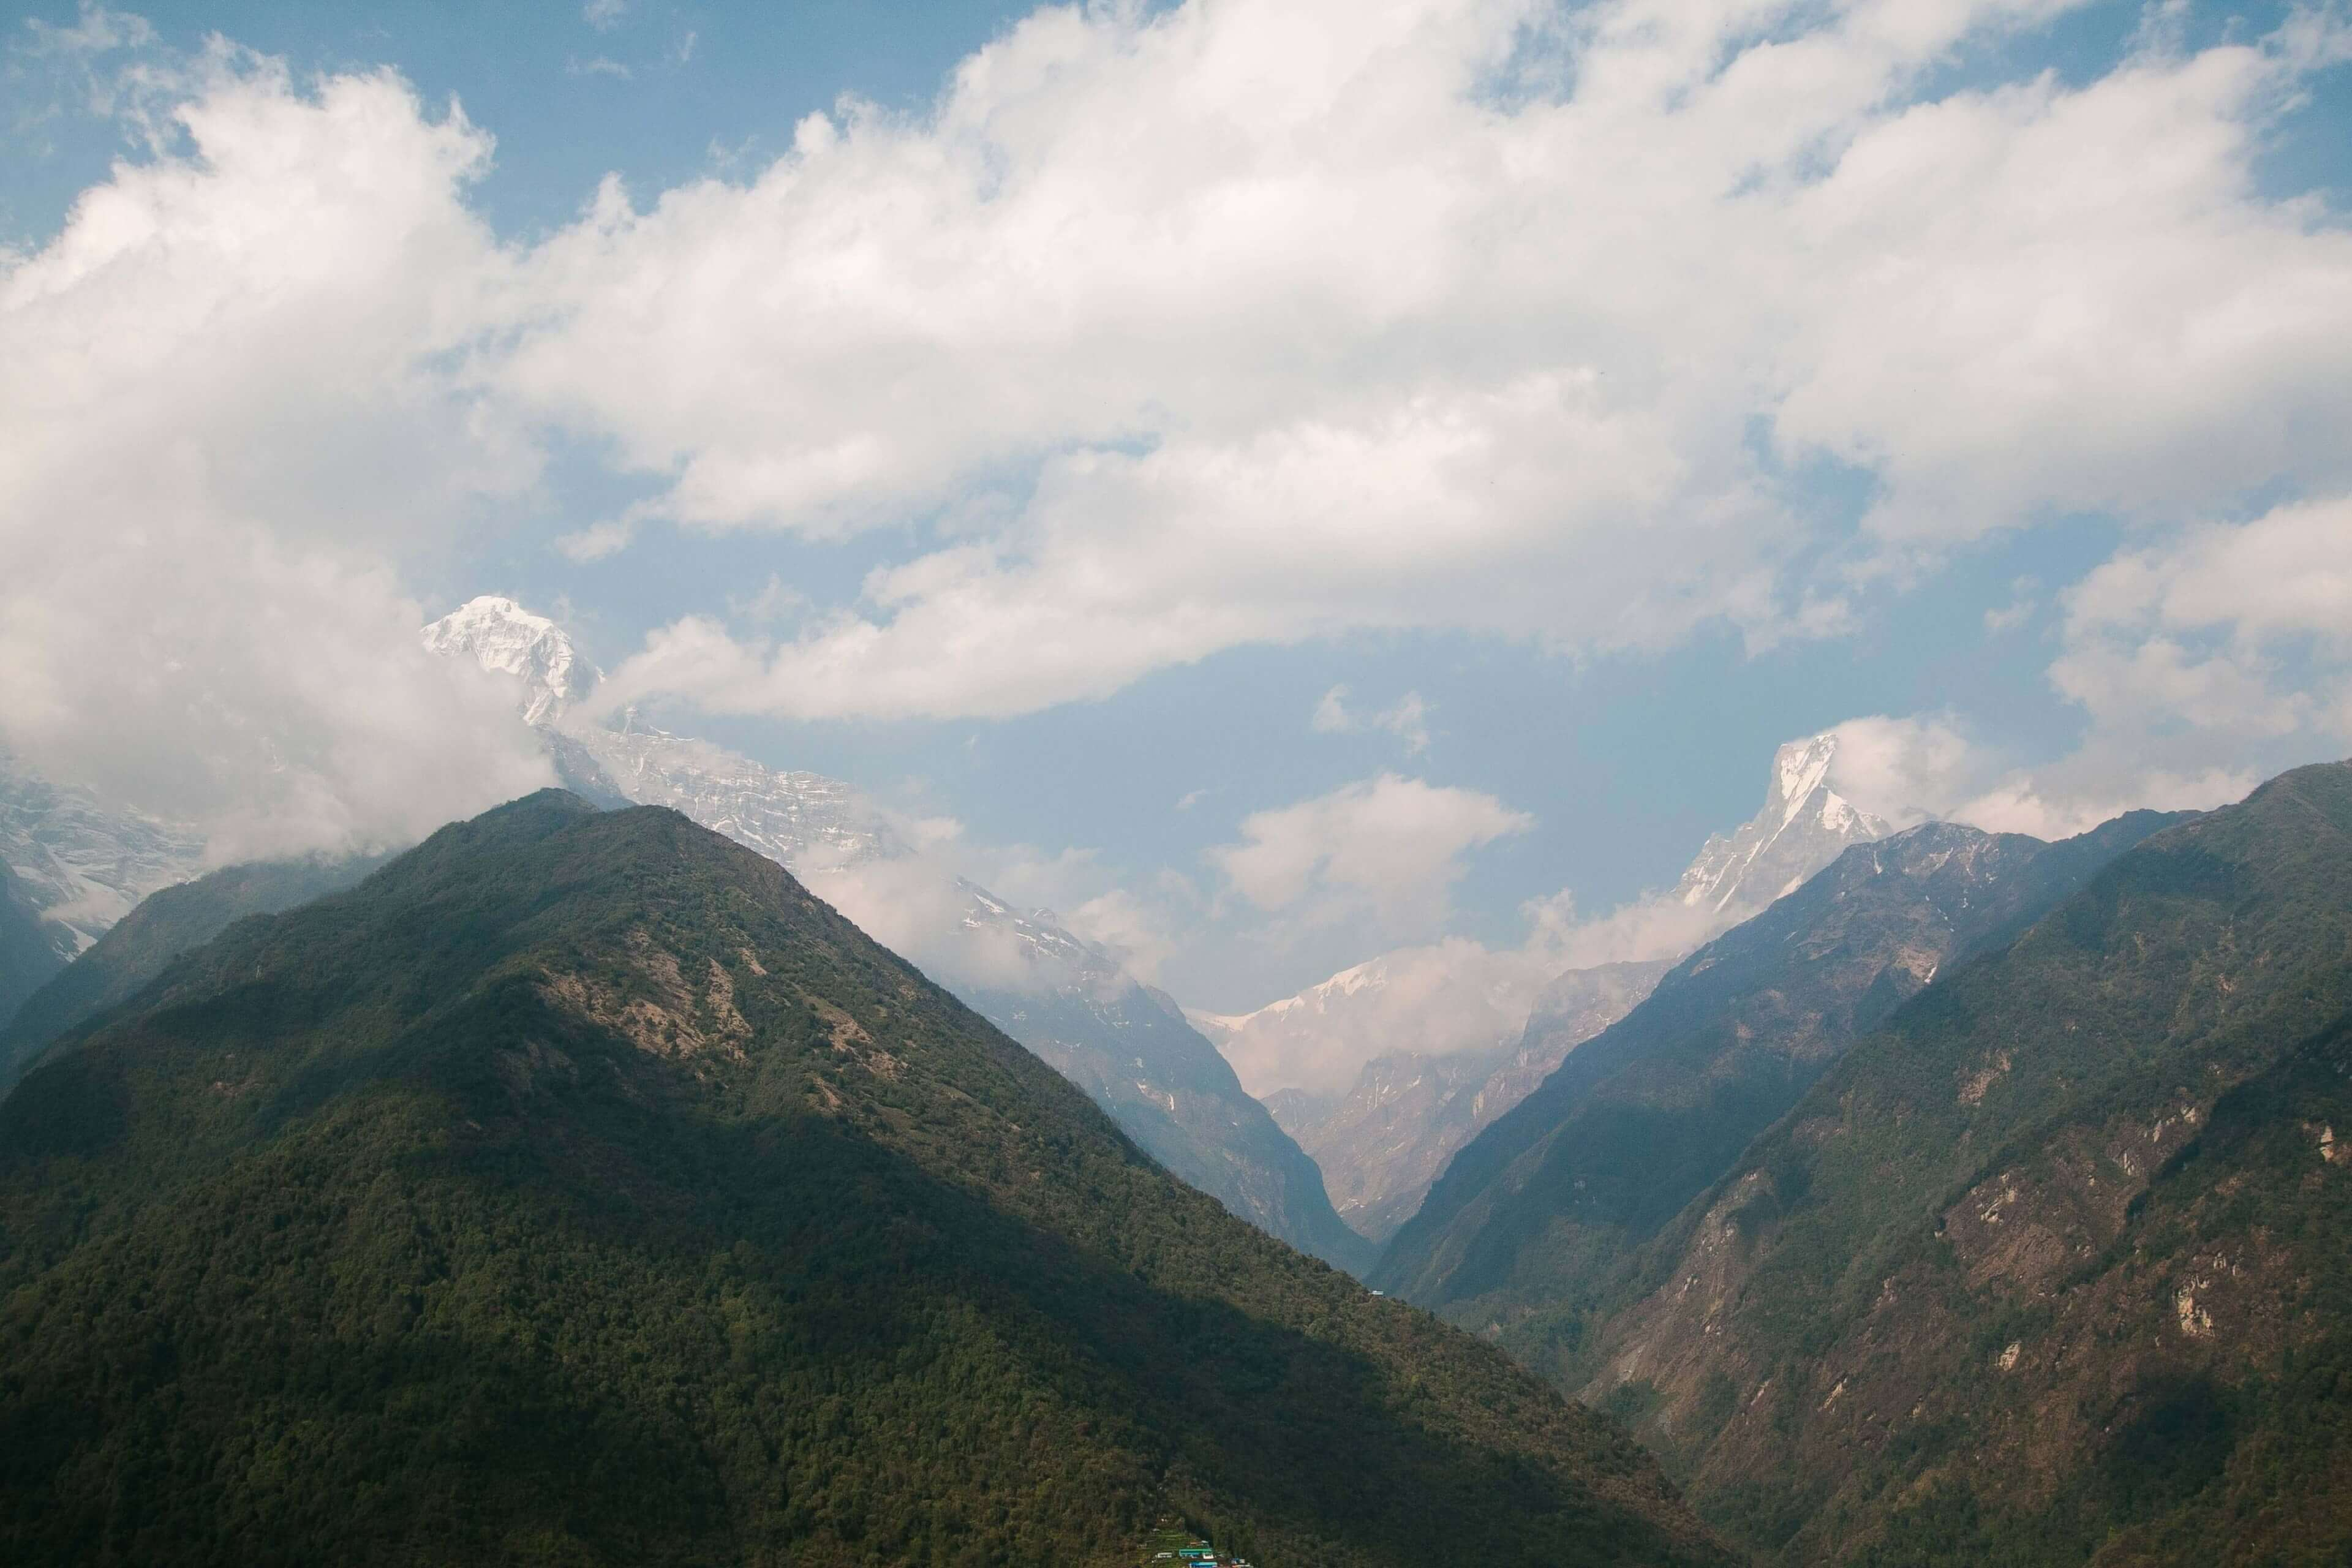 Looking Towards The Annapurna Massive